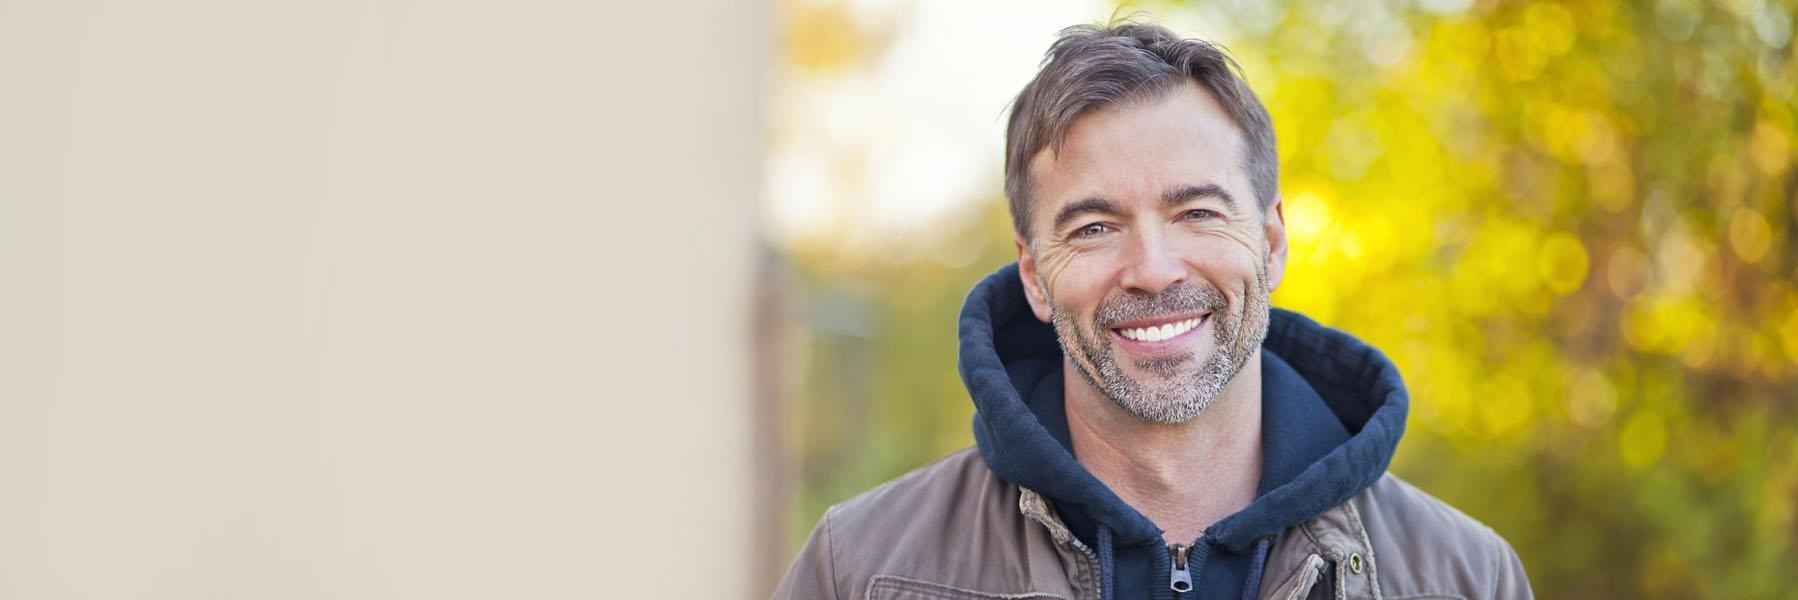 Older man with grey hair smiling l dental implants woodinville wa